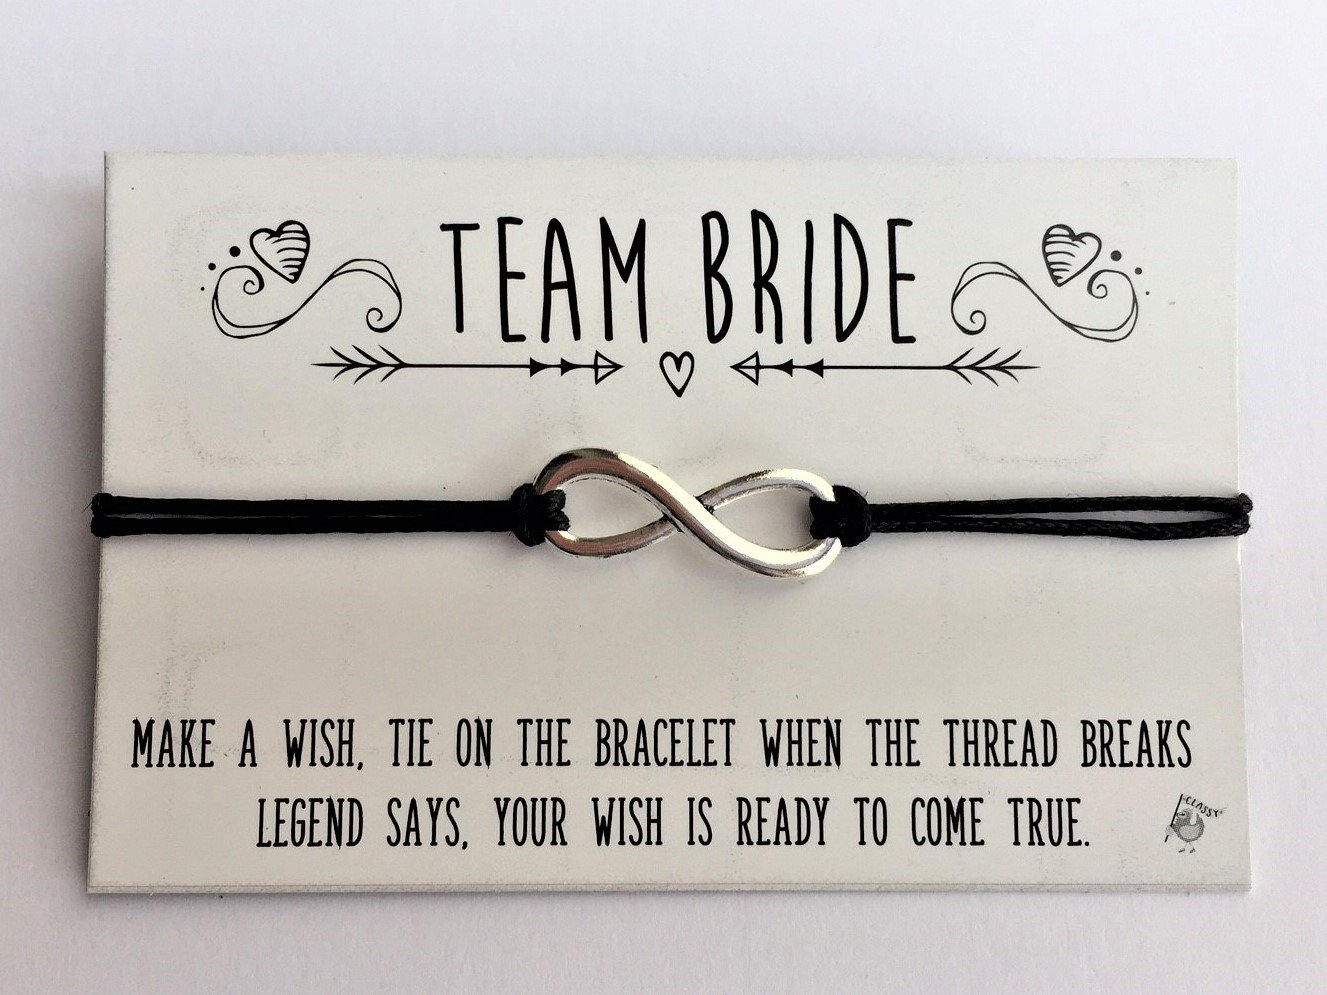 Classy Hen - Hen Party Favours - Bride Tribe - Team Bride - Handmade Wish Bracelet (Bride Tribe 6 Black) 6BTB